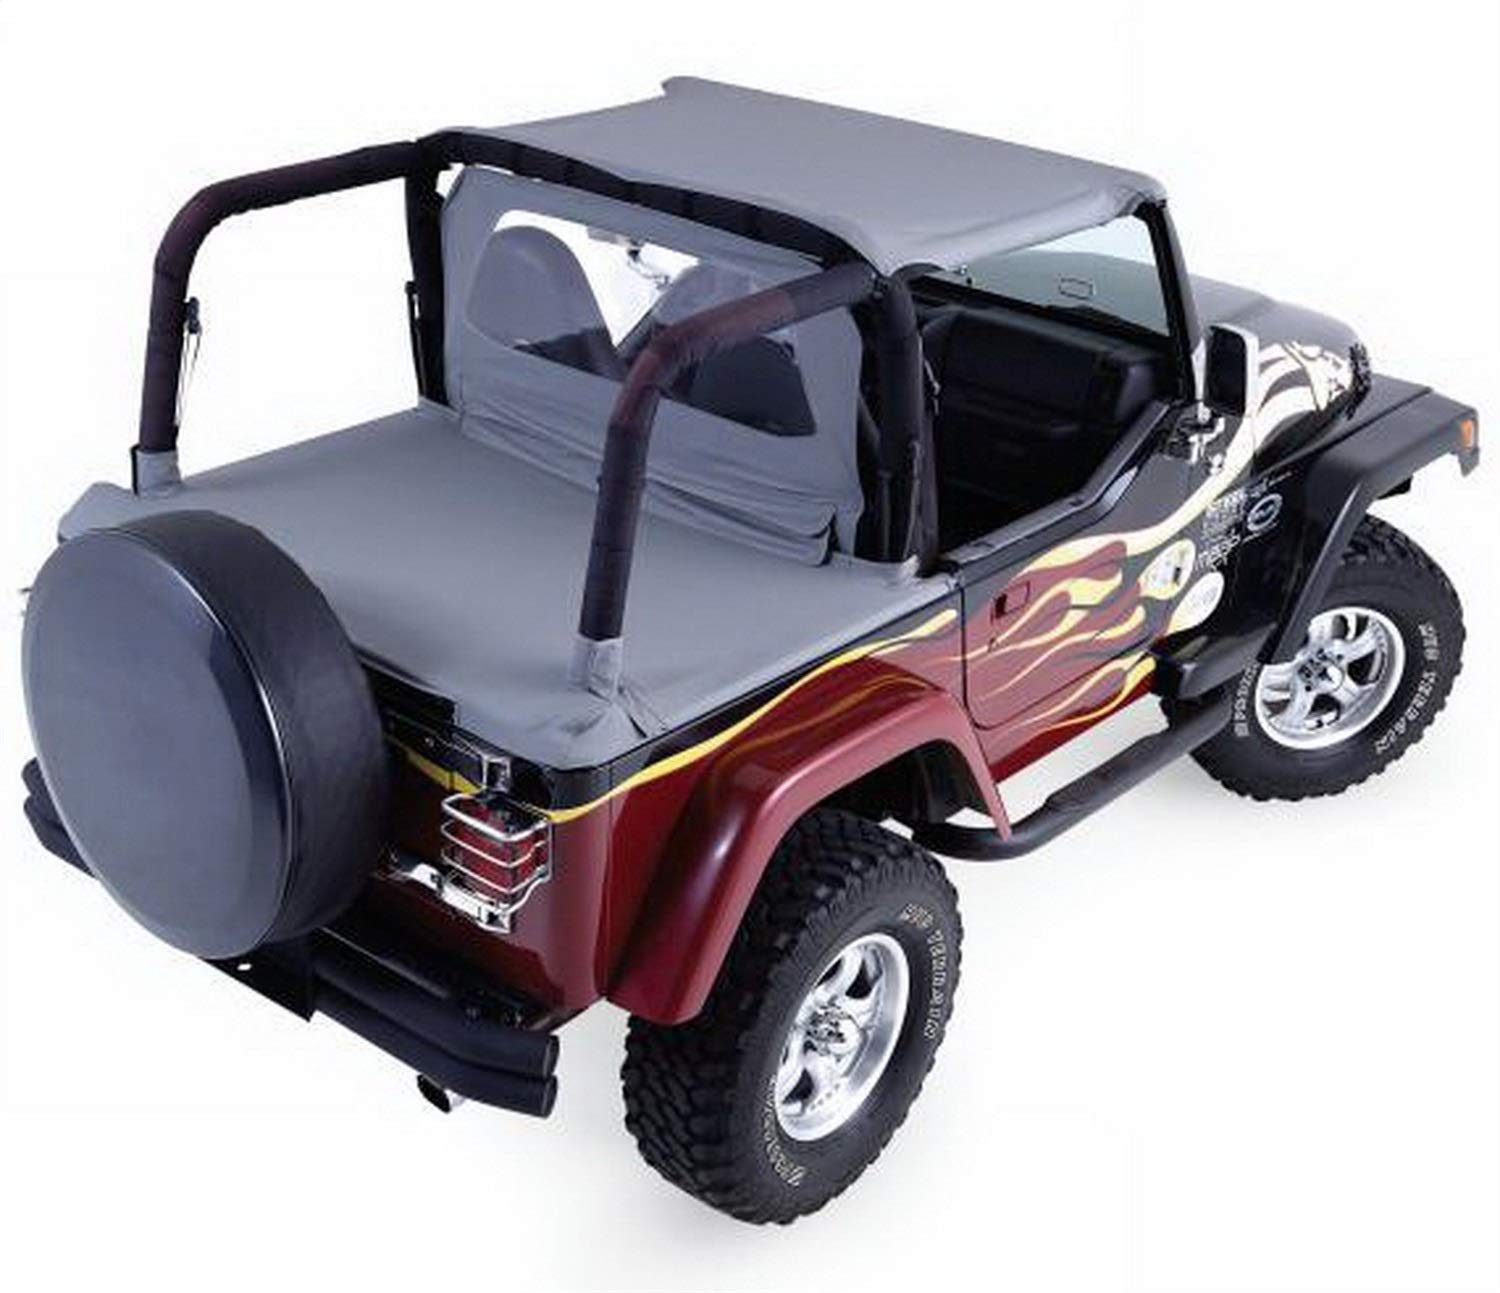 RAMPAGE PRODUCTS 993015 Cab Top for Soft Top Half Door Vehicles Only Black Denim Fits 1992-1995 Jeep Wrangler